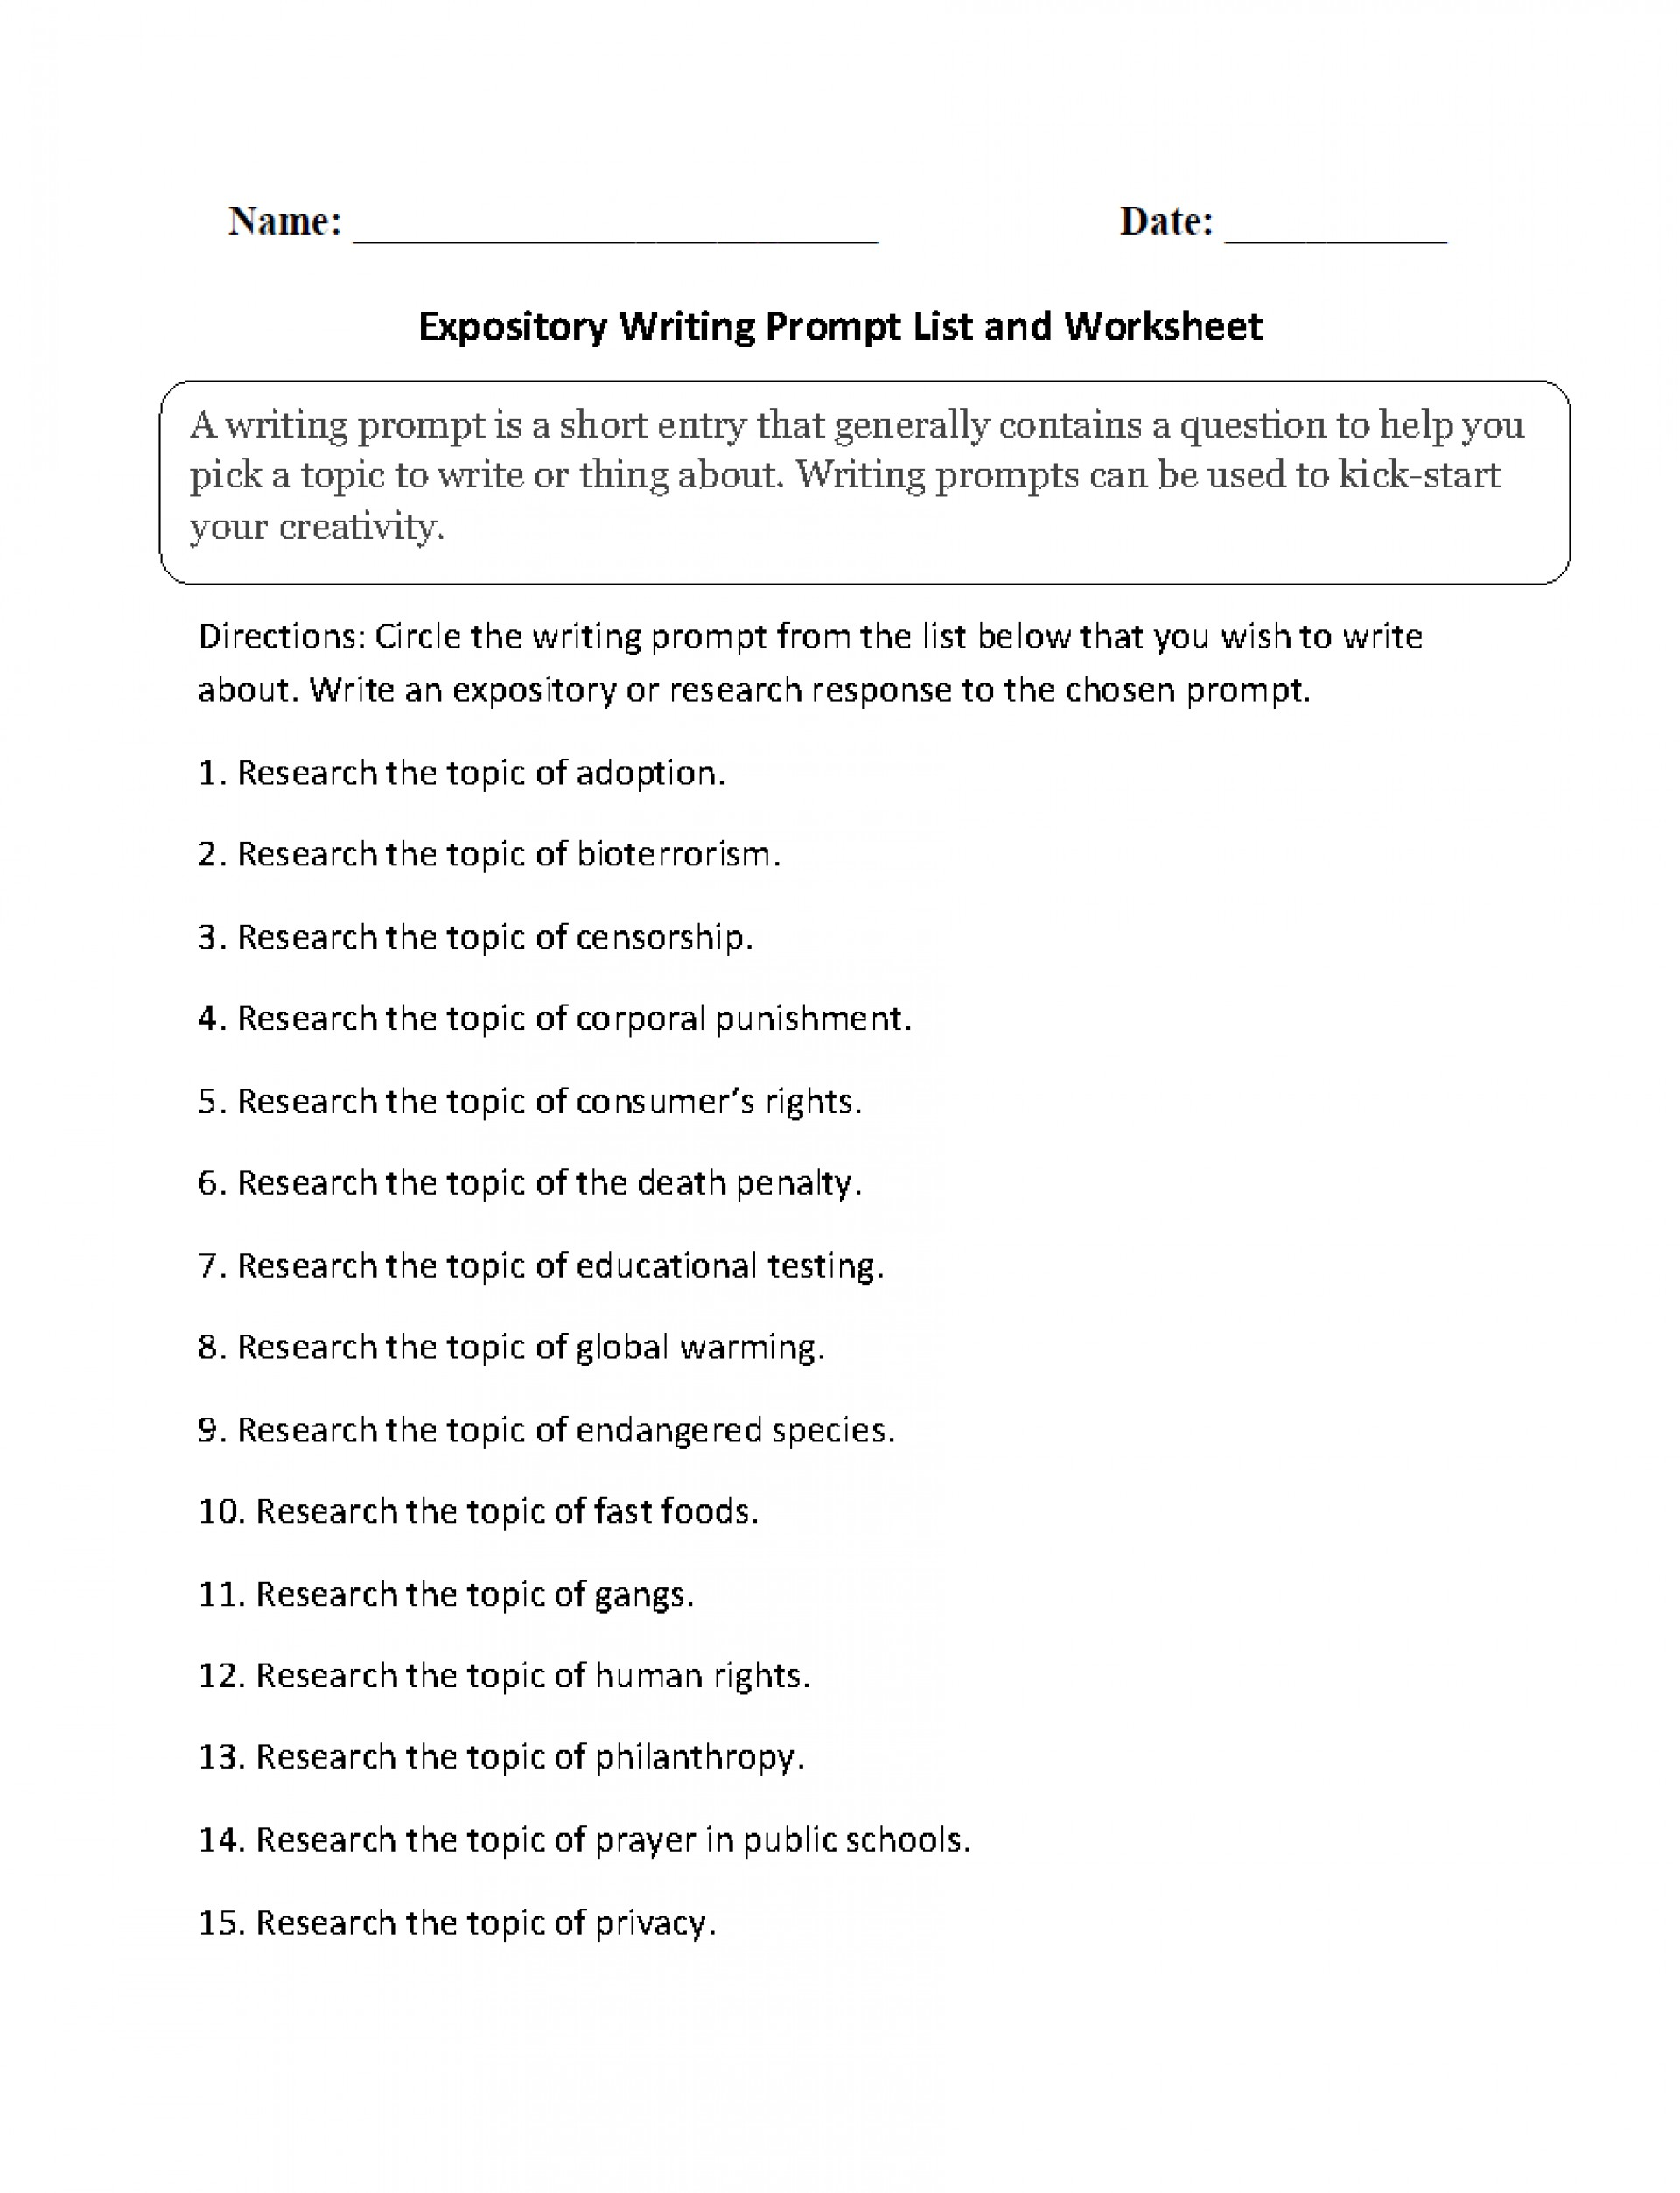 019 Expository Topics List Paragraph Essay Writing Prompts Middle School Incredible 5 1920